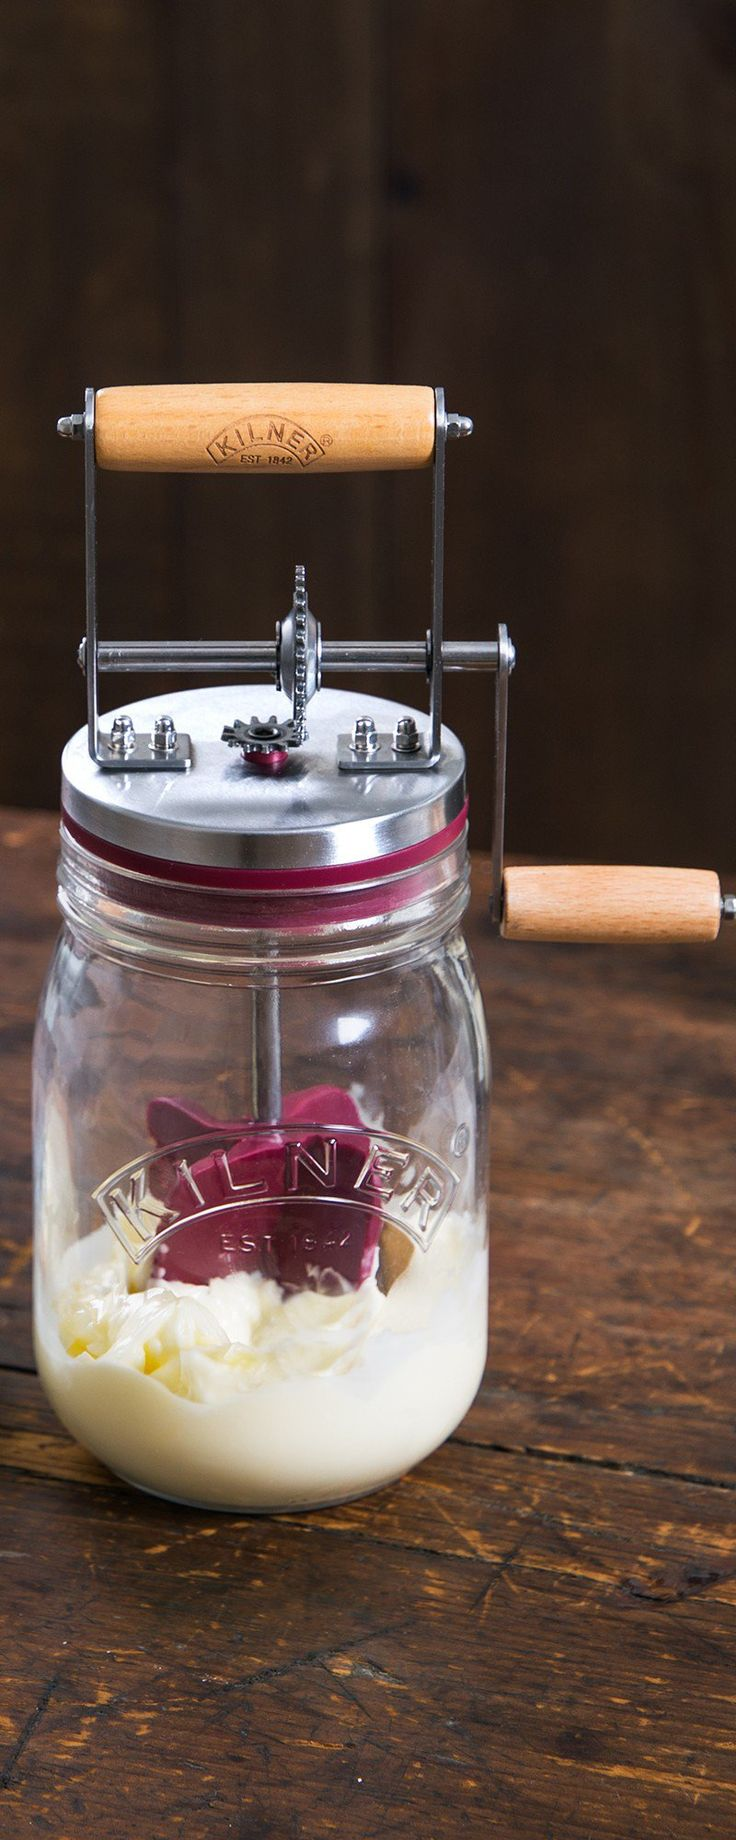 Make homemade butter in about 10 minutes with Kilner's butter churner, discovered by The Grommet. A modern update of an old-fashioned churner. / Kitchen <3